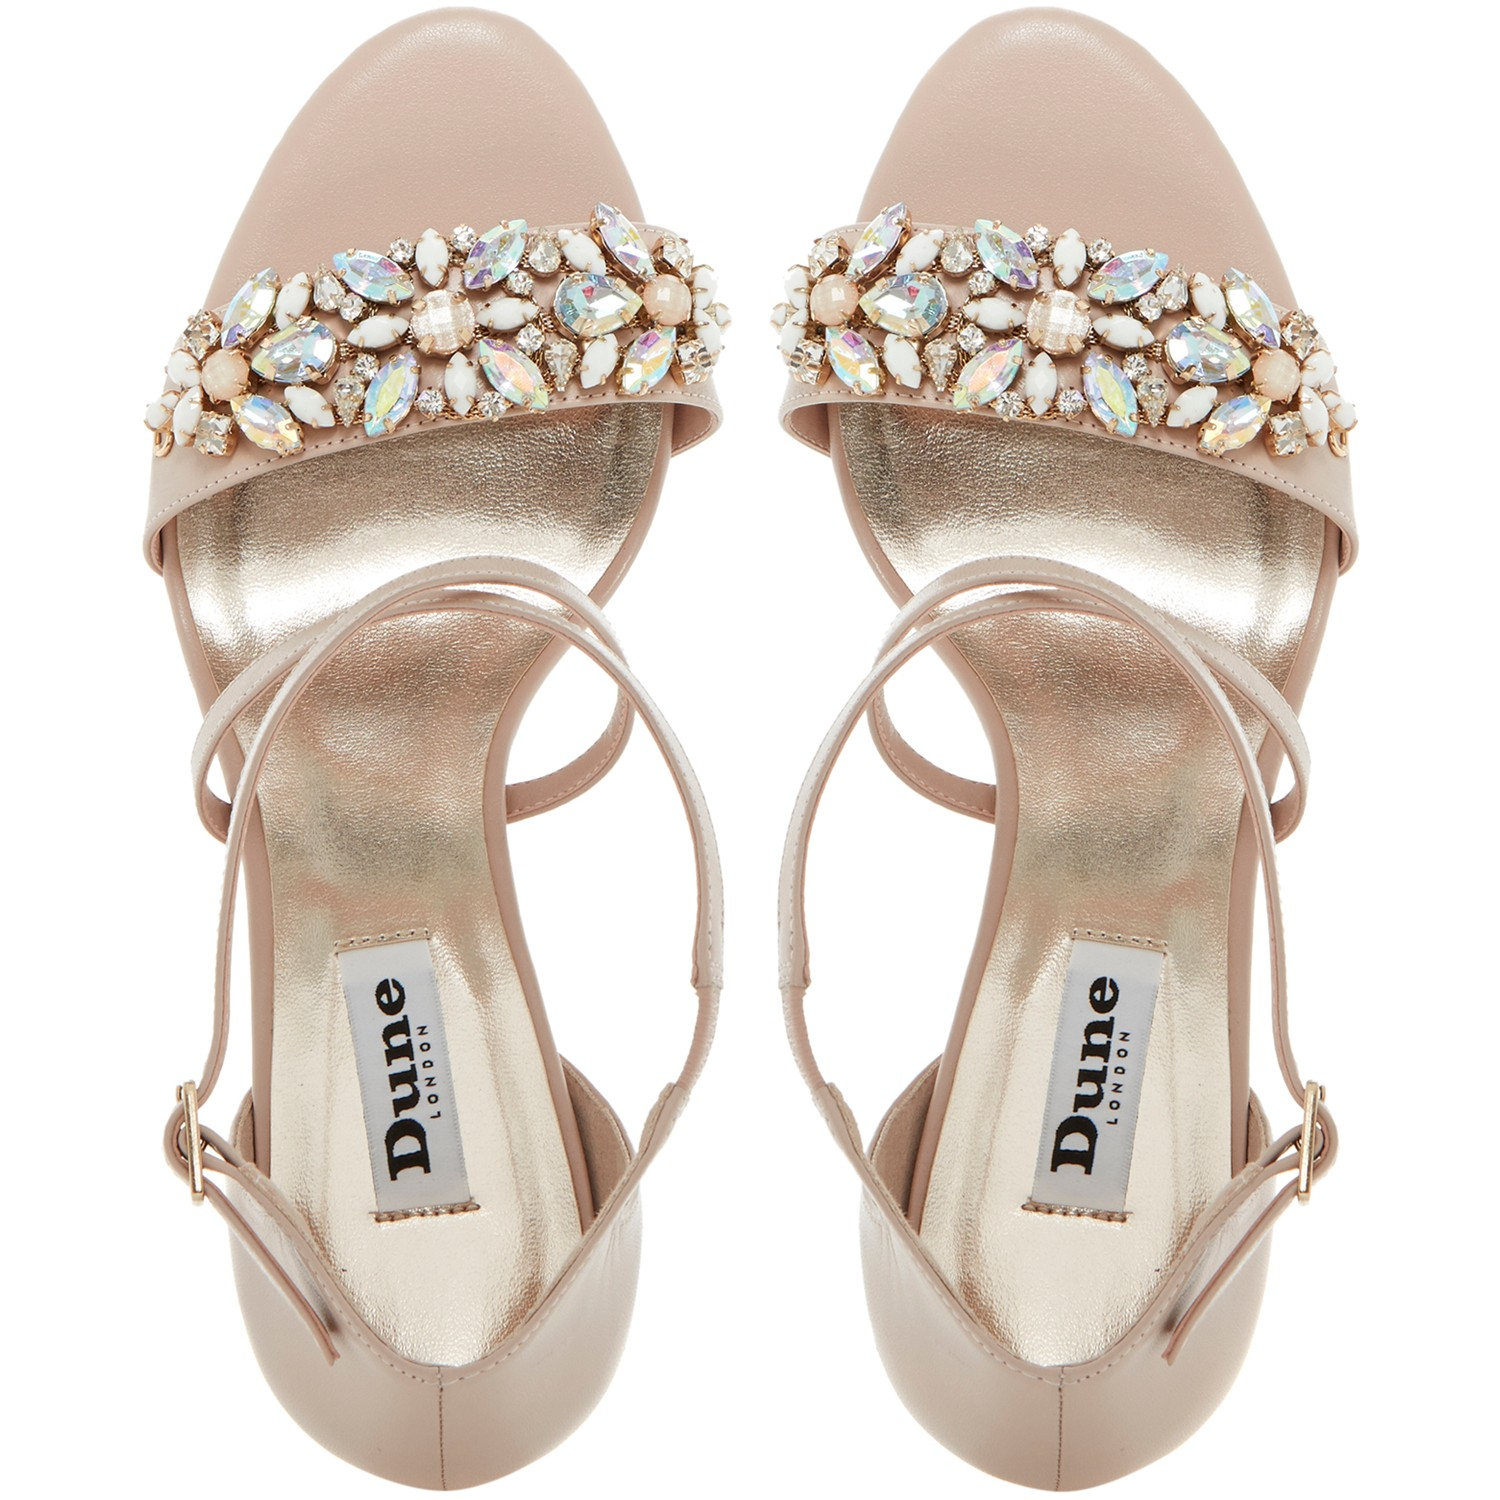 8abe30795 Dune Mollee Strappy Heeled Gem Strap Leather Sandals in Pink - Lyst